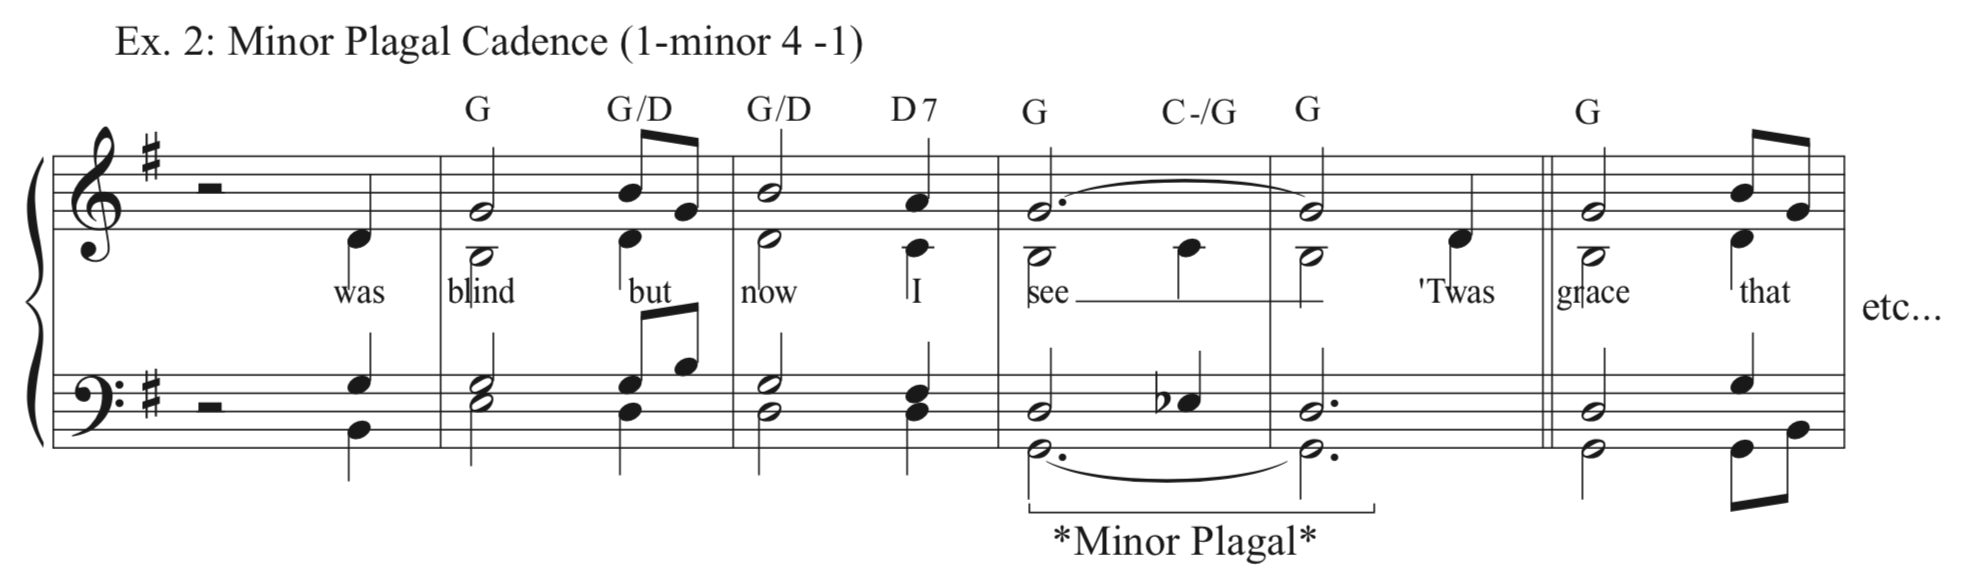 Ex. 2 - Minor Plagal Cadence - For when you've played too many simple plagal cadences and want to spice things up a little. I particularly like using this at the end of a hymn as the final cadence.